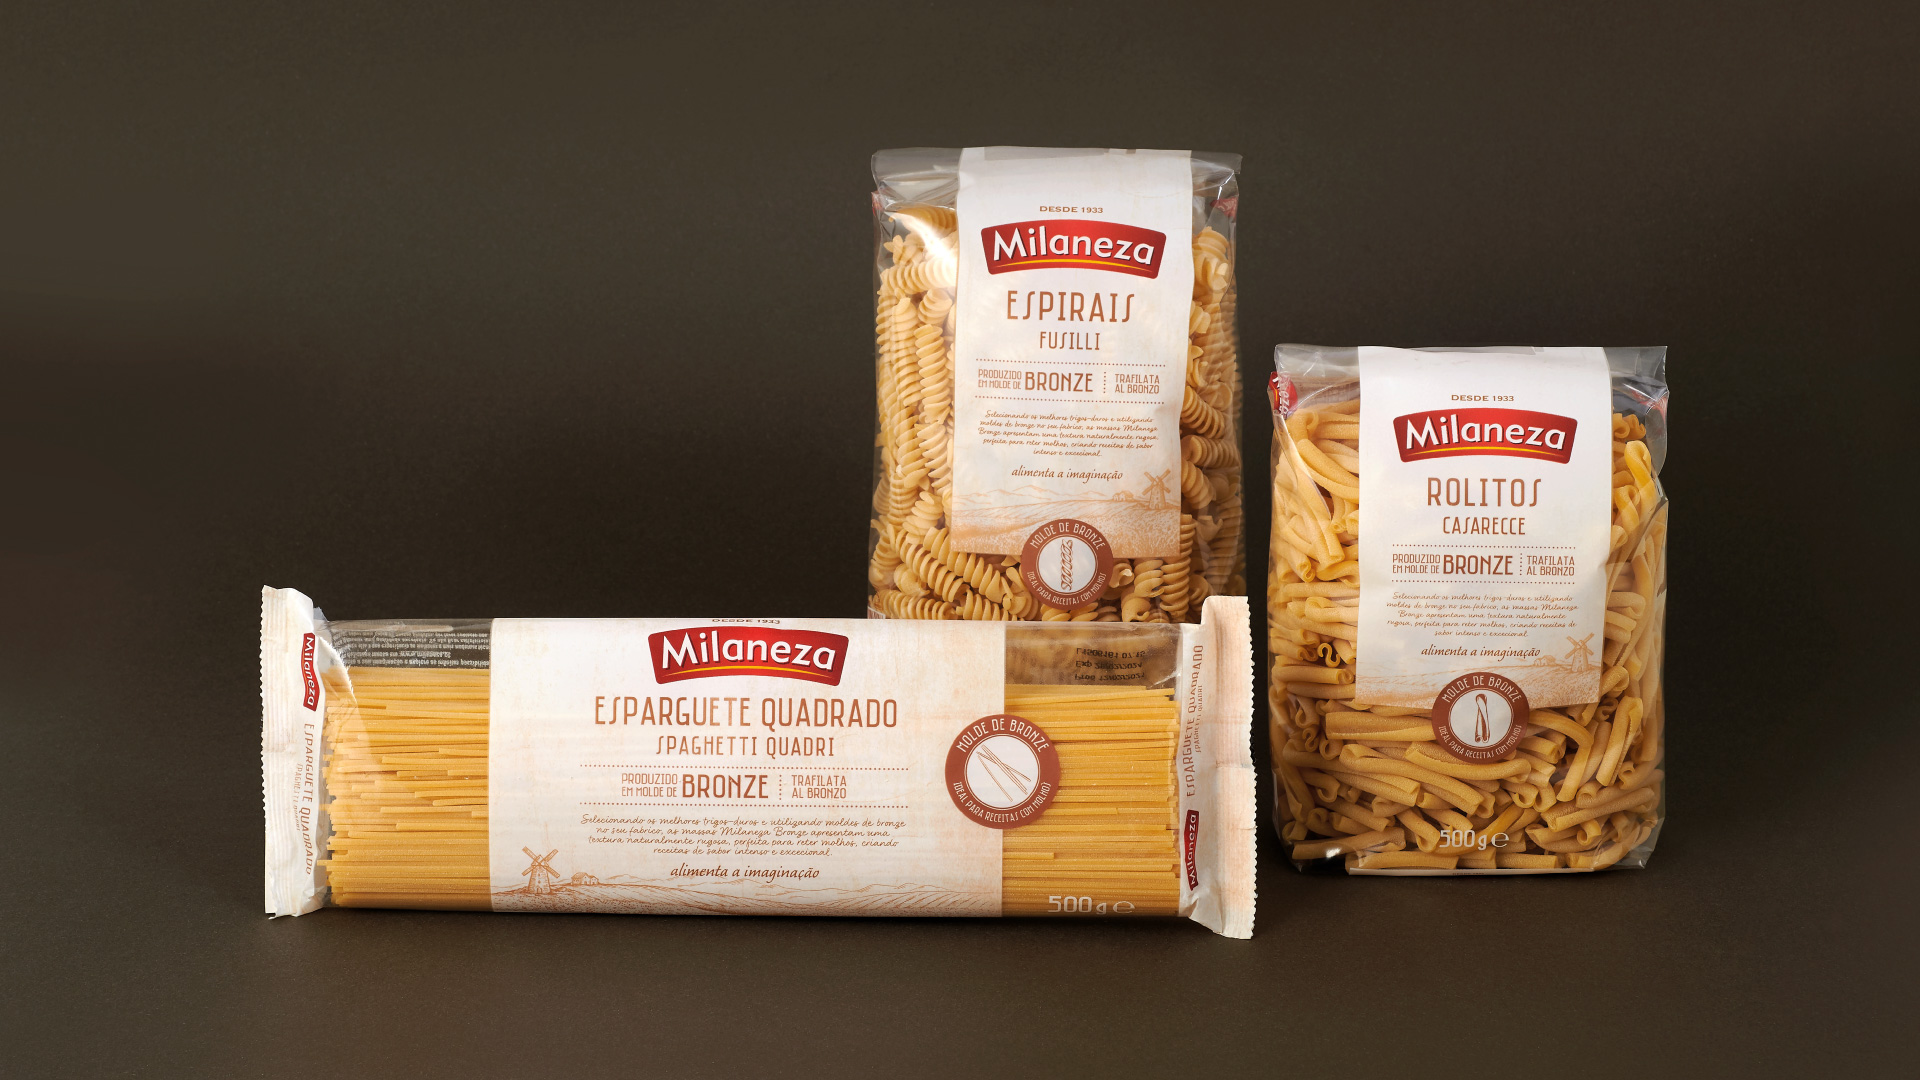 Milaneza Pasta Packaging Design a Perfect Blend of Tradition and Innovation